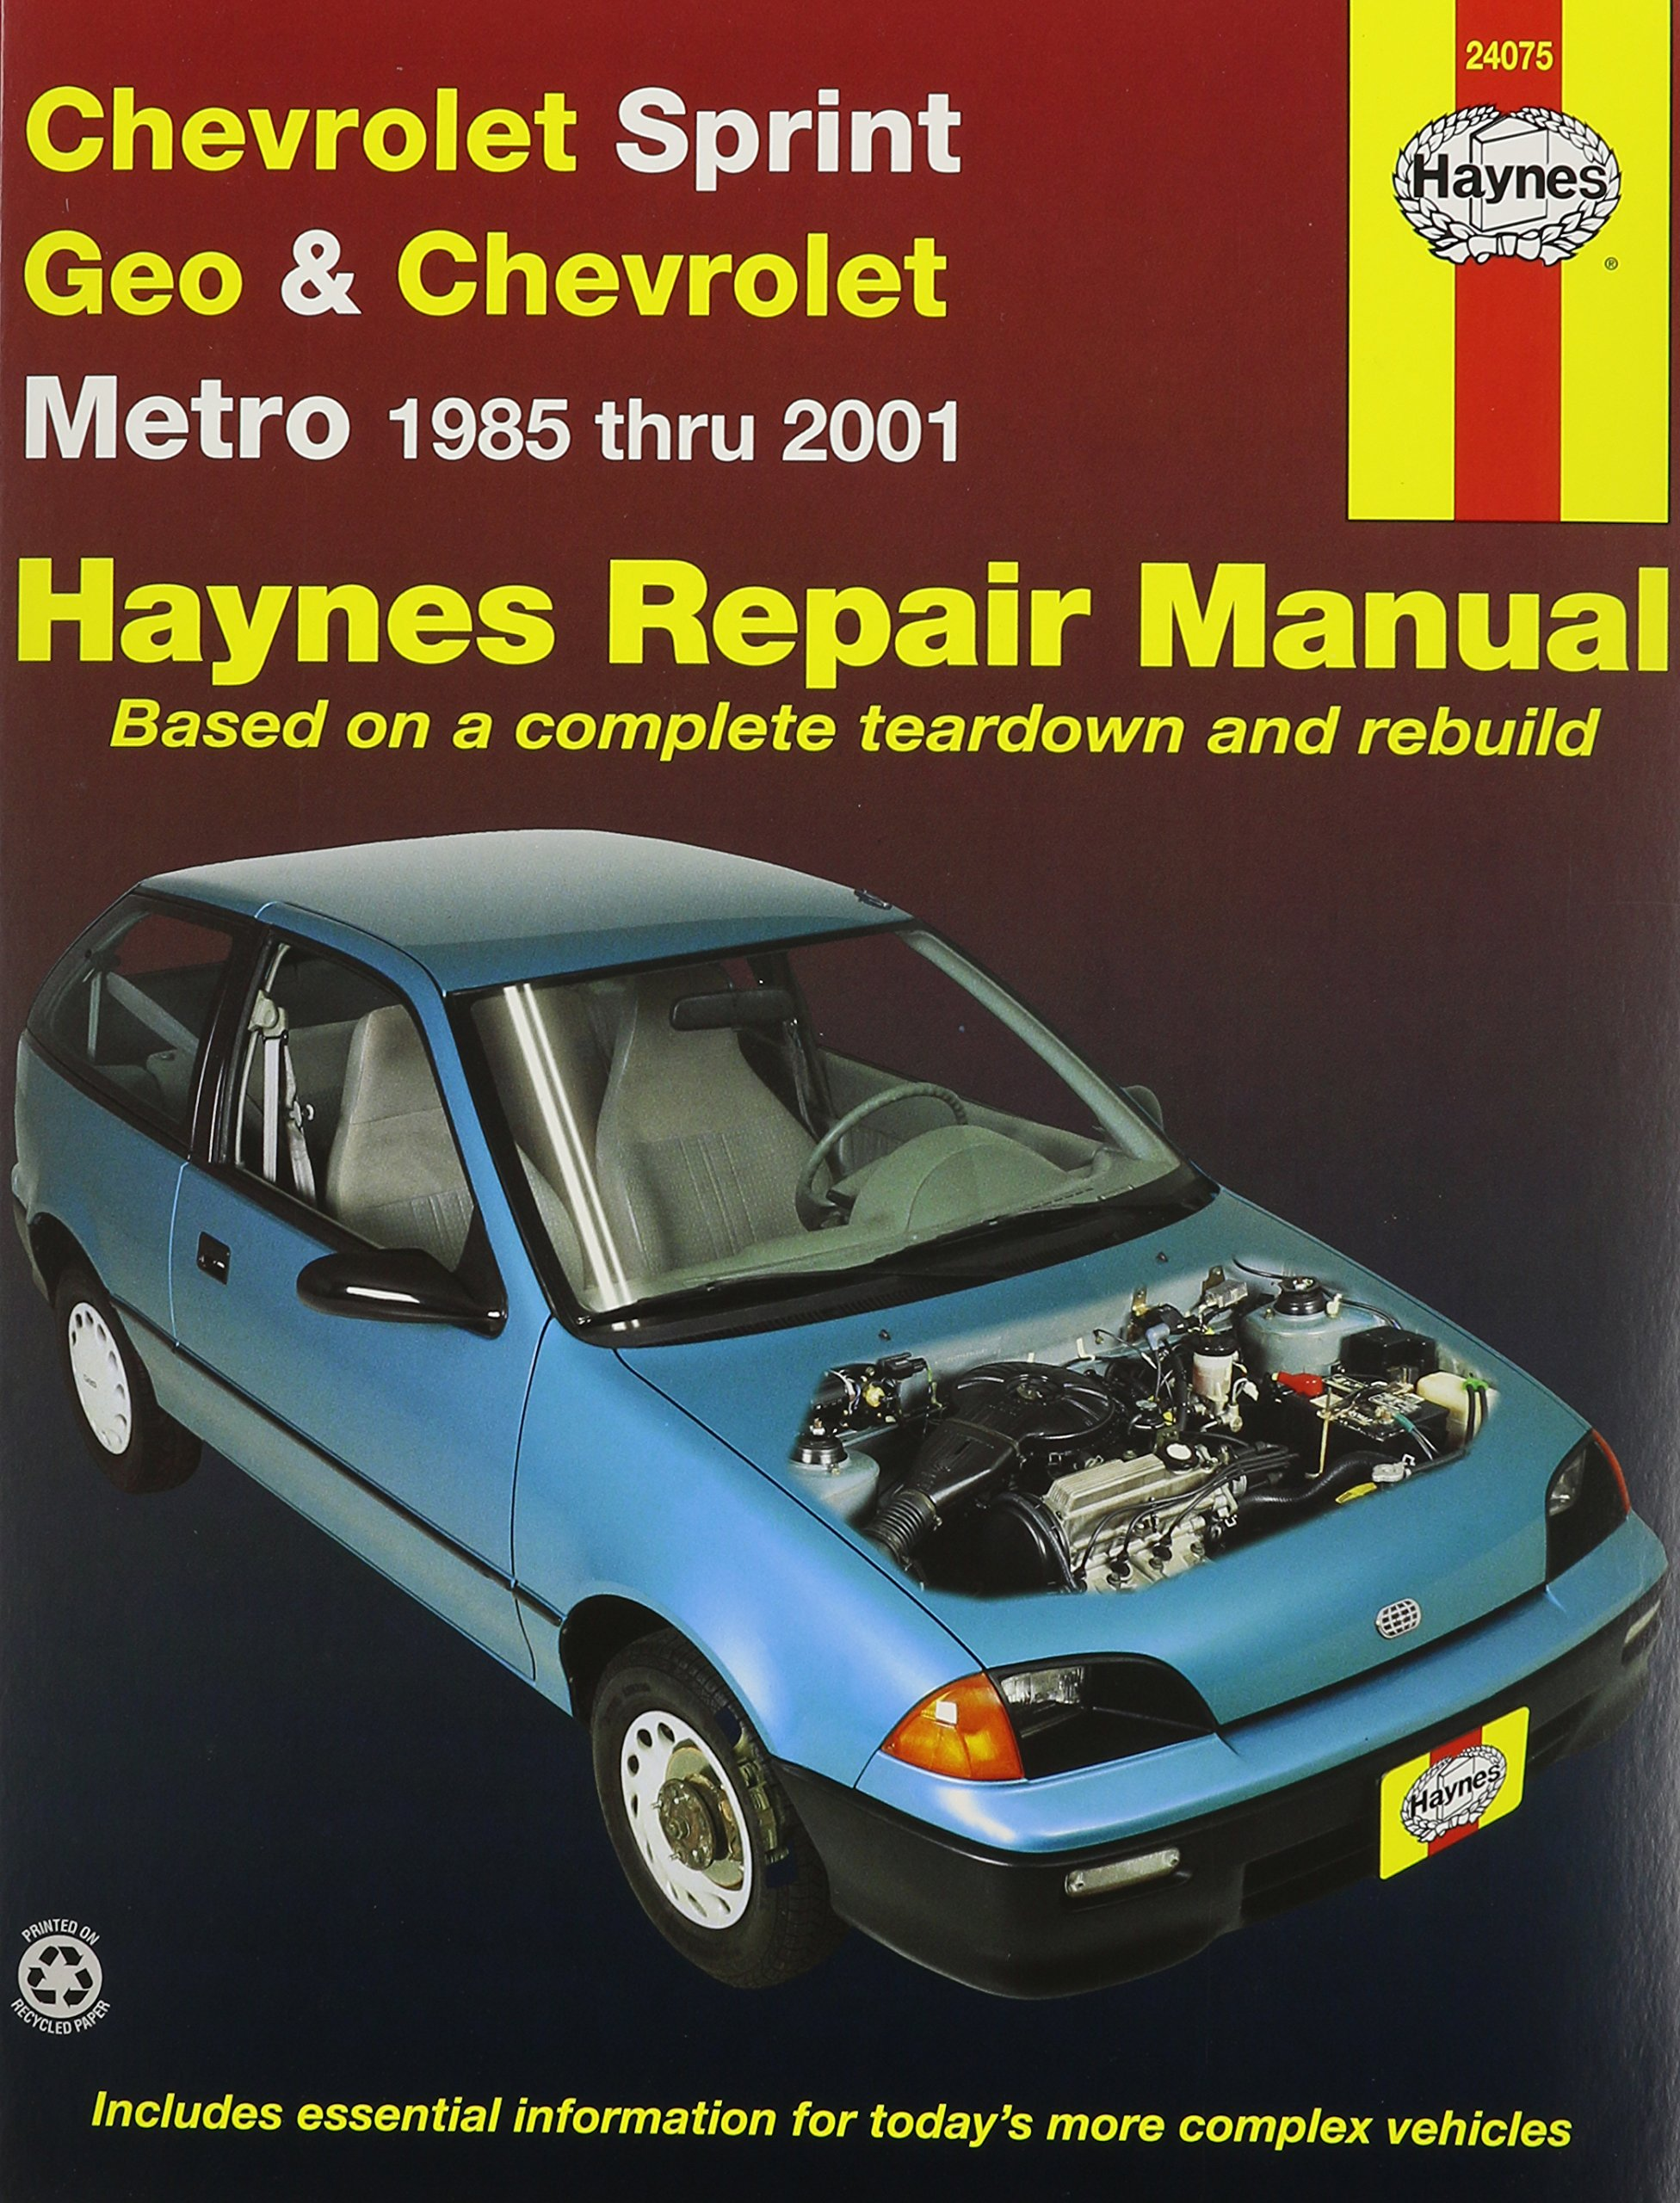 amazon com haynes manuals 24075 chev sprint geo metro 85 01 rh amazon com  1995 Geo Prizm 1993 Geo Prizm